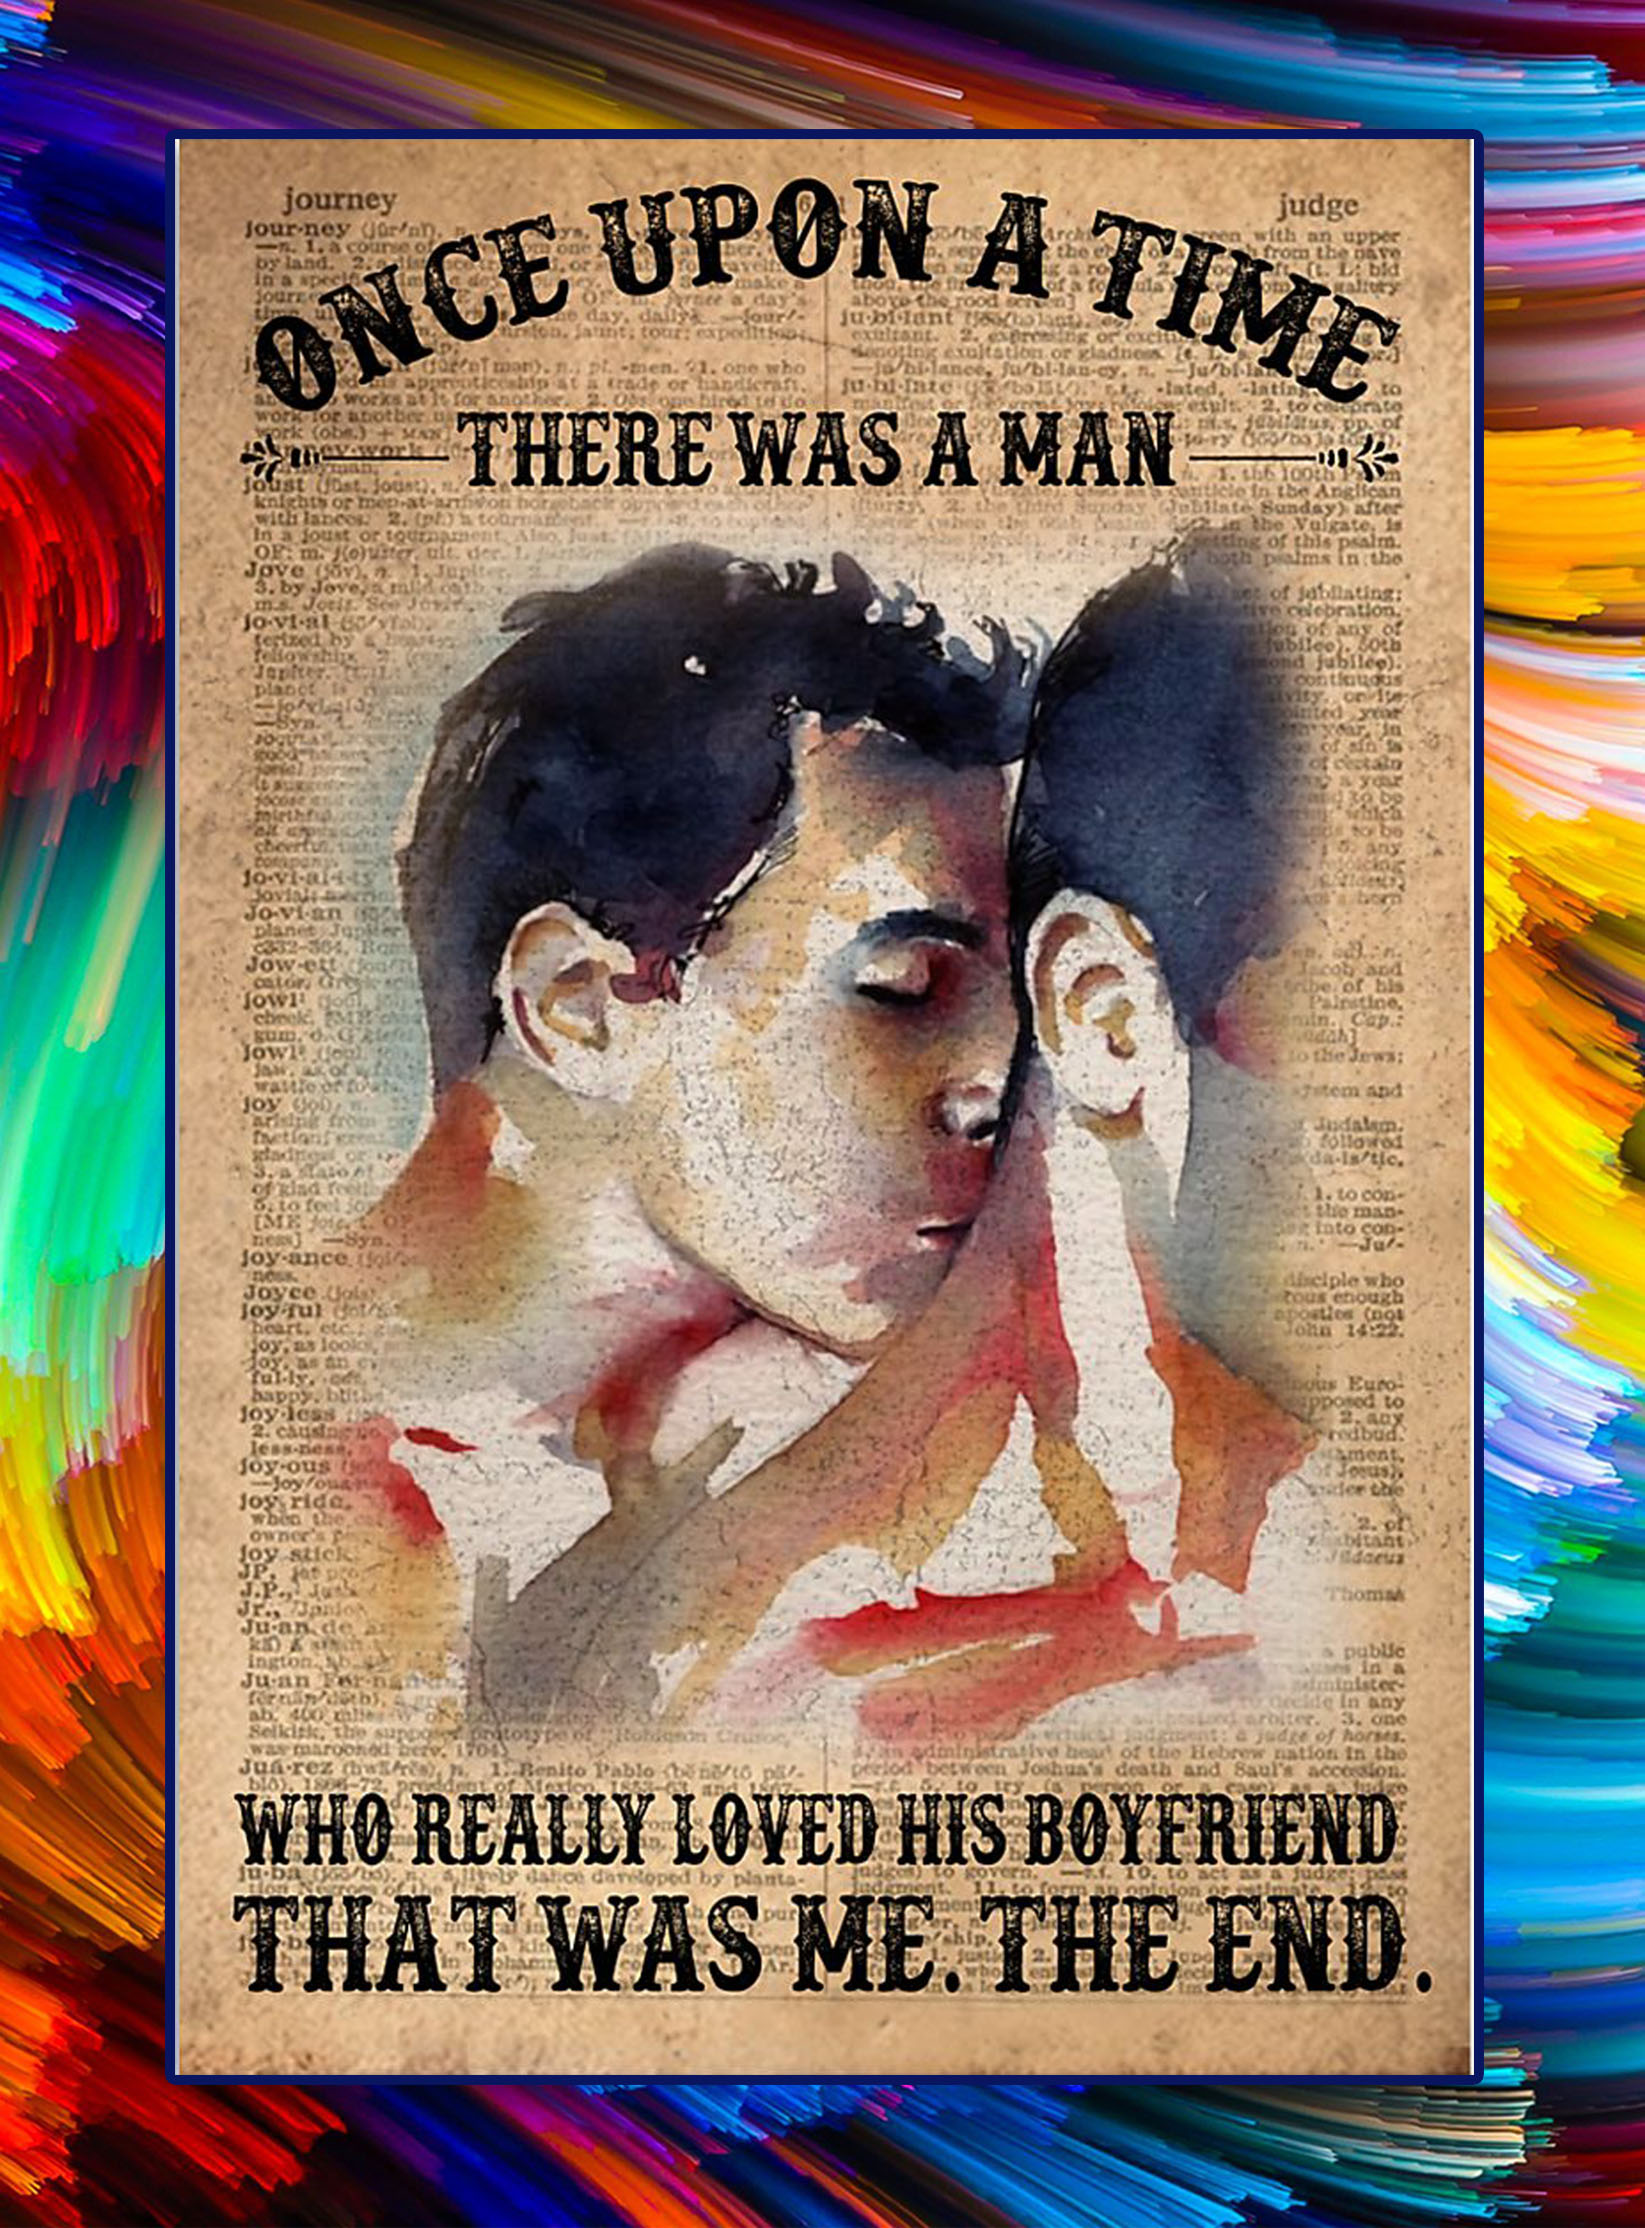 Once upon a time there was a man whOnce upon a time there was a man who really loved his boyfriend poster - A4o really loved his boyfriend poster - A4